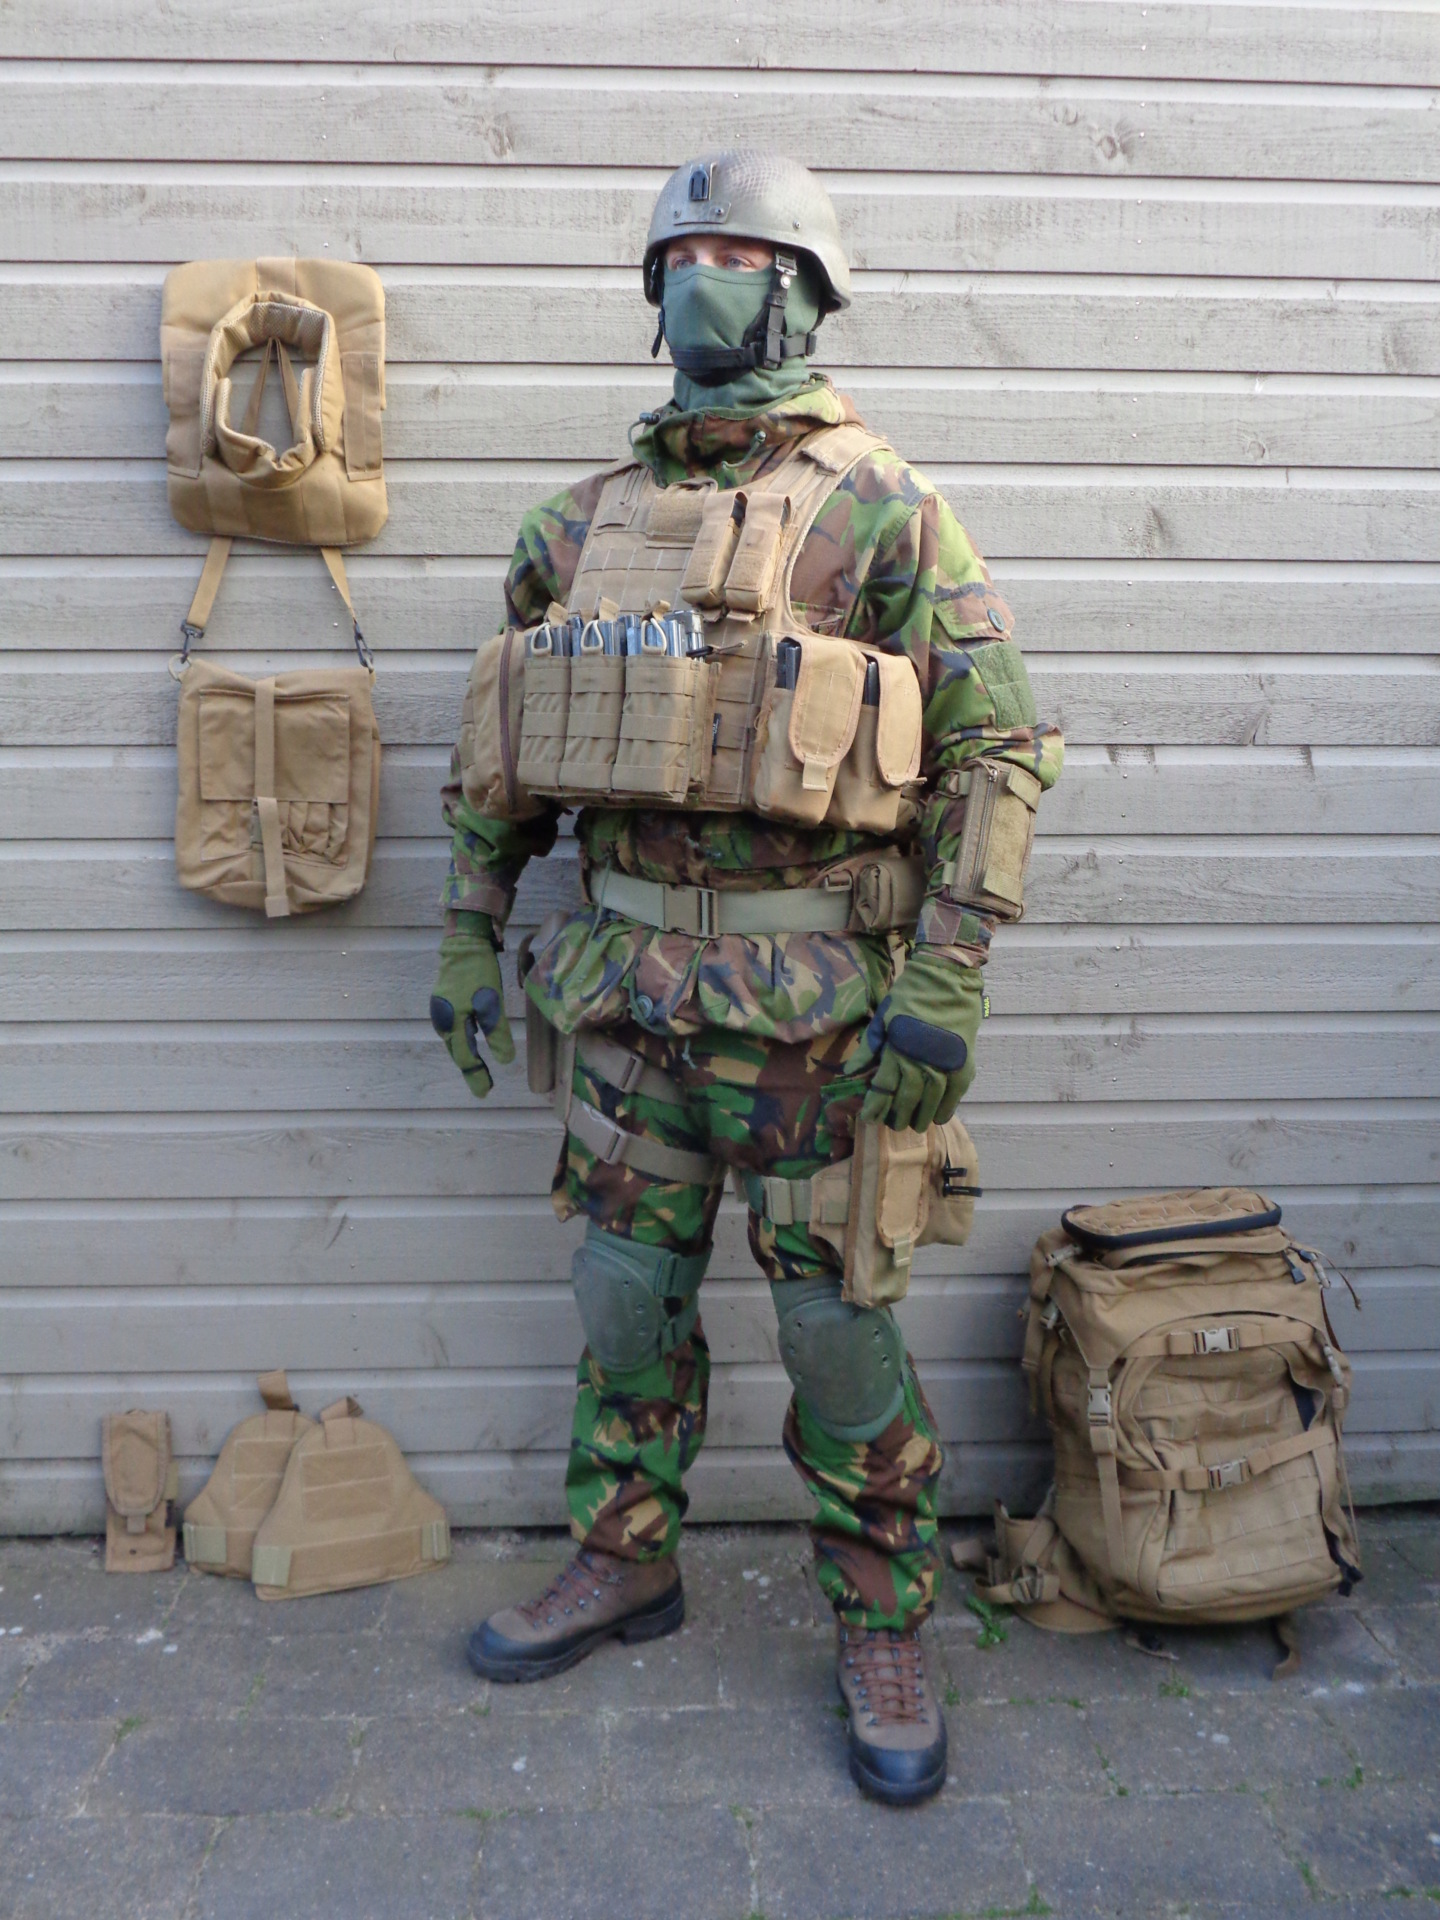 Dutch army loadout displays (cold war era) - Page 5 Nederl90